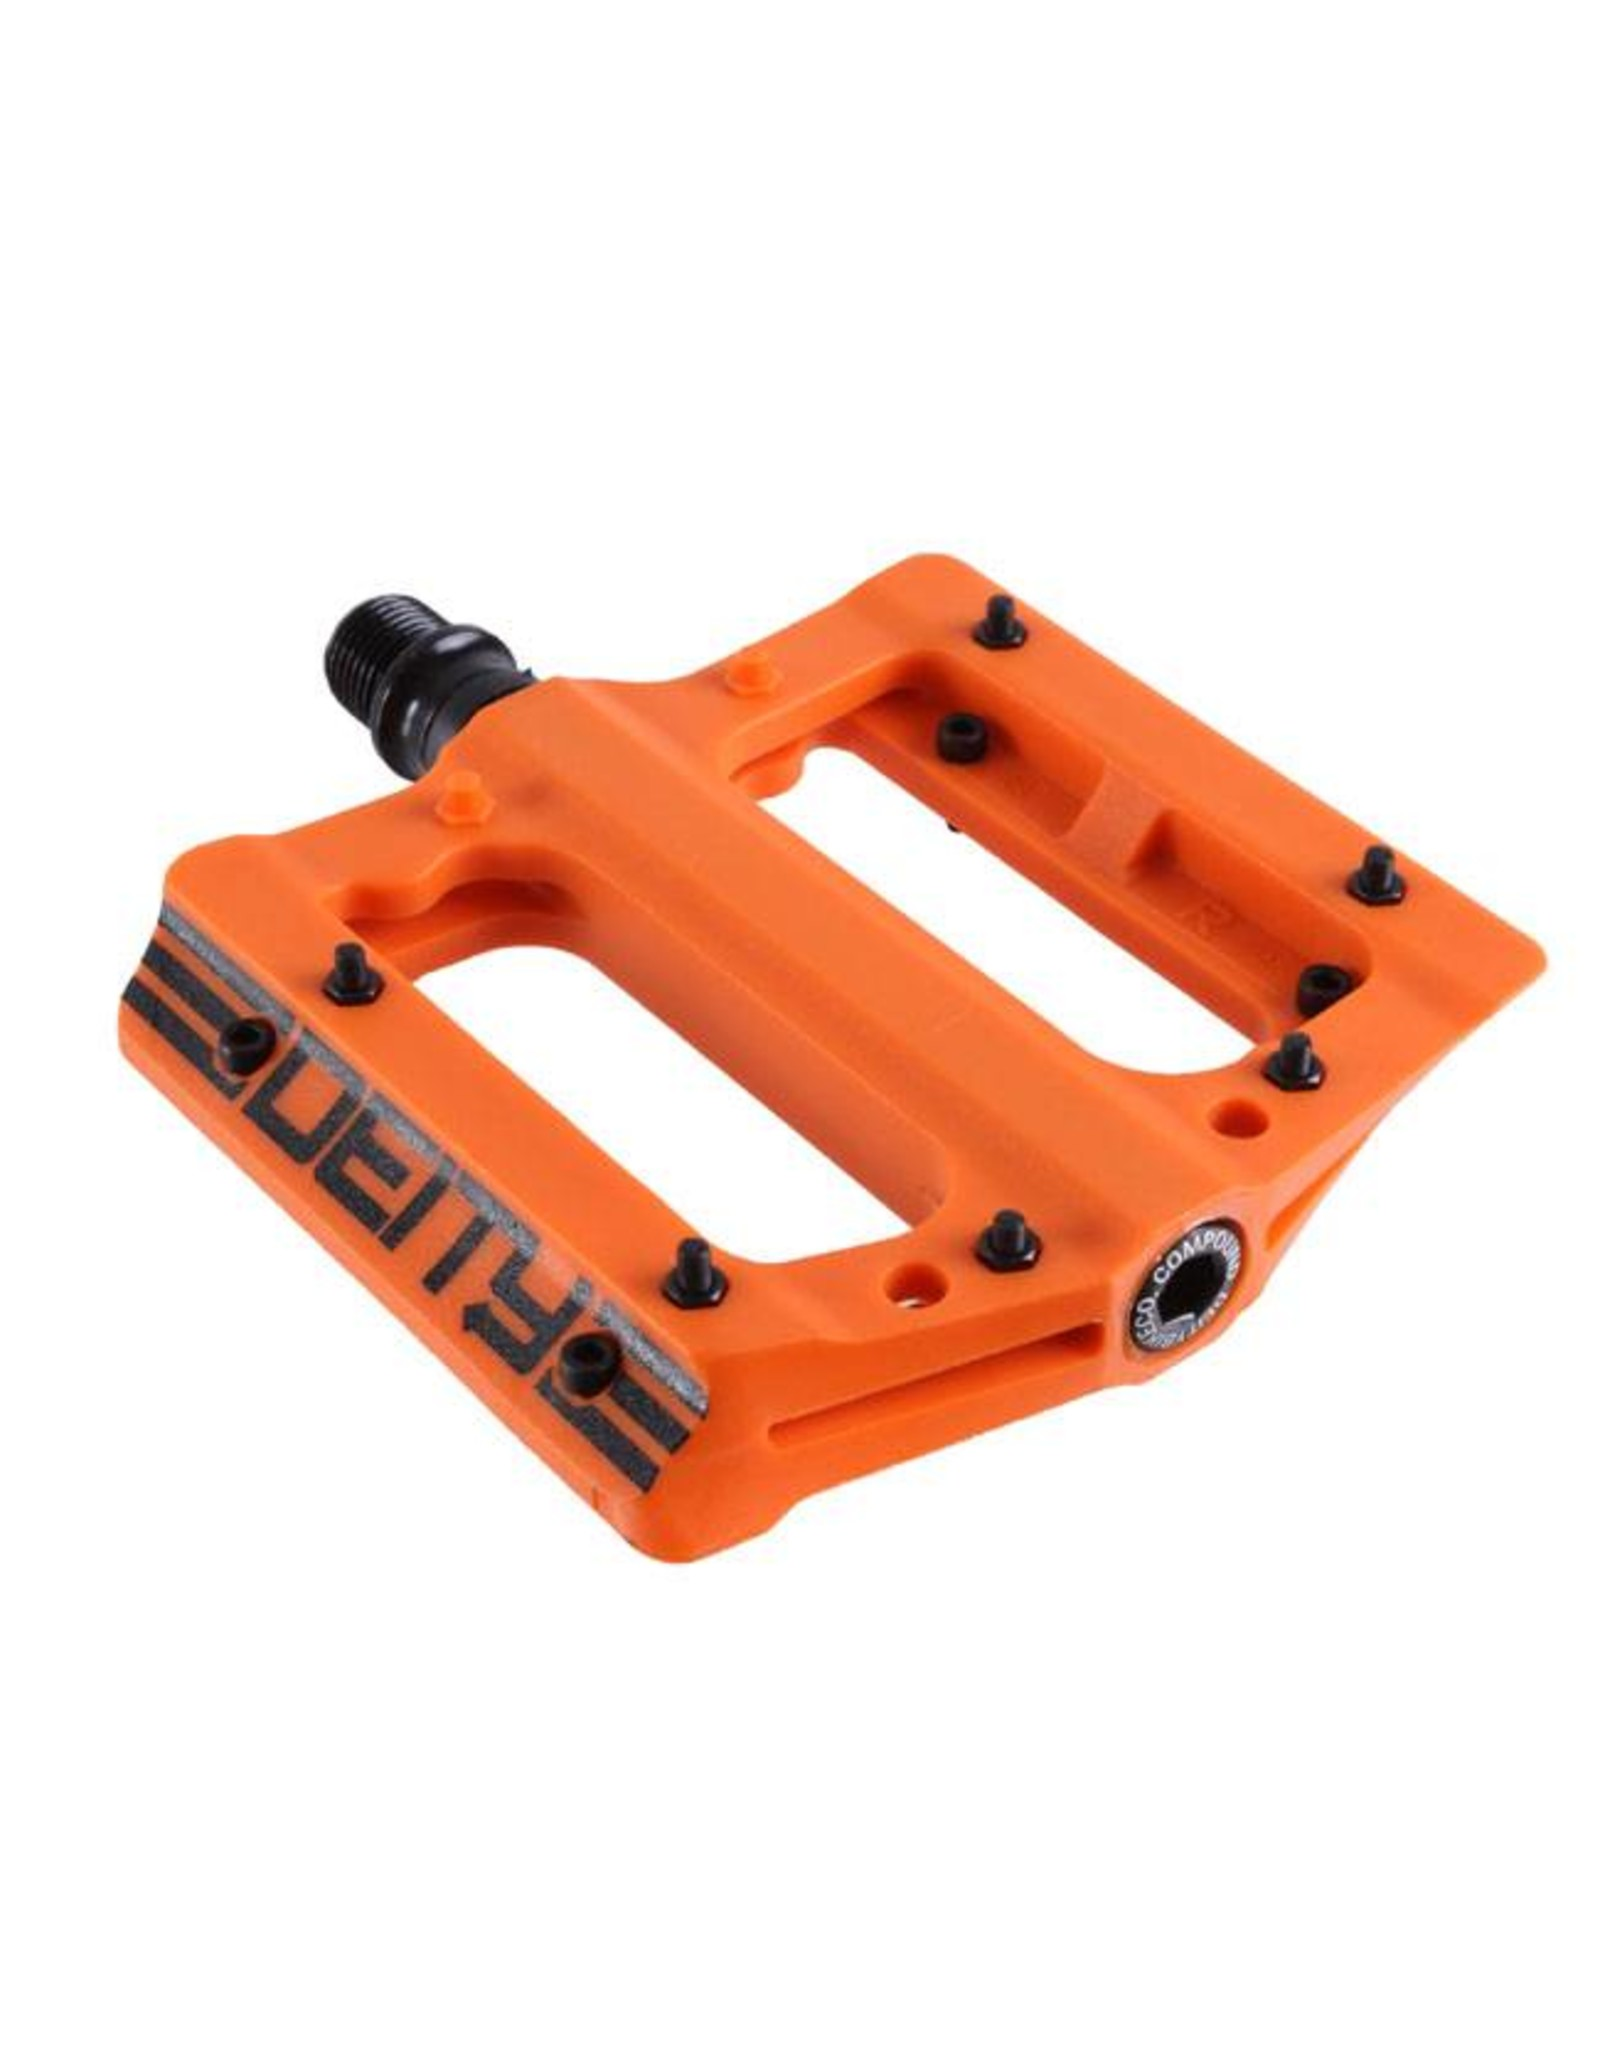 Deity Components Deity Compound Pedals: Orange/Black Graphics